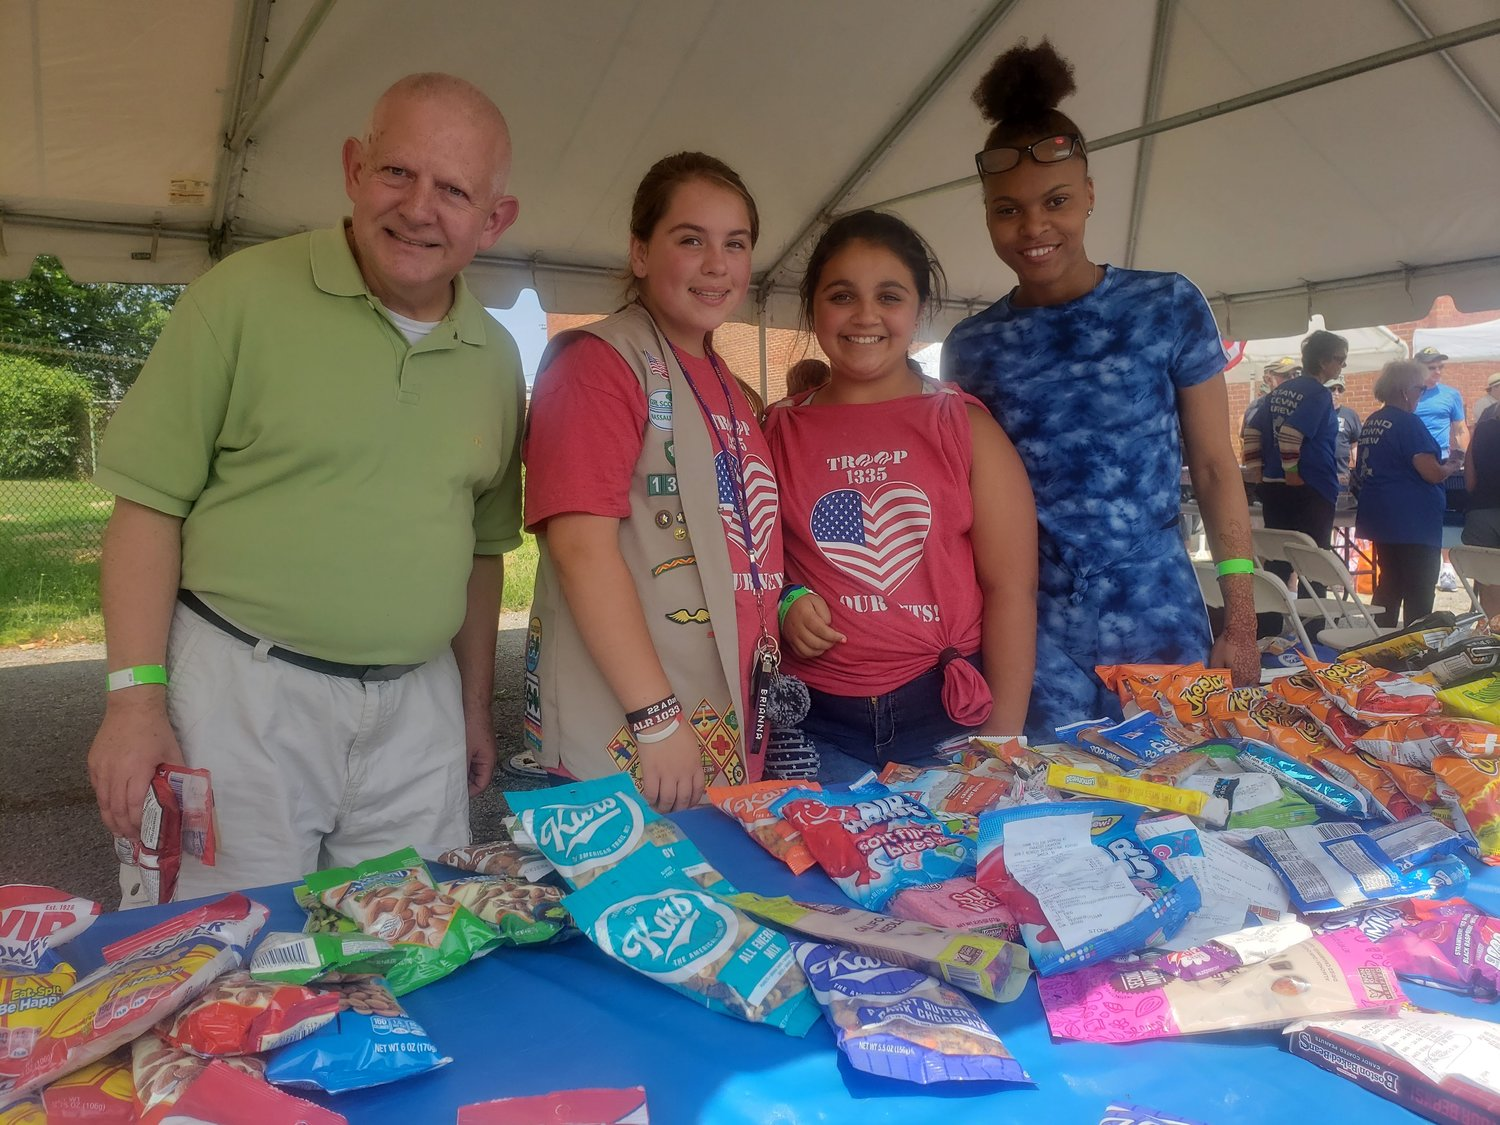 Elmont Girl Scout Troop 1335 and Freeport AHRC Nassau volunteers, from left, Ralph Gilloon, Natalie Becker, Sammy Vacchian and Neffertiti Dolce.